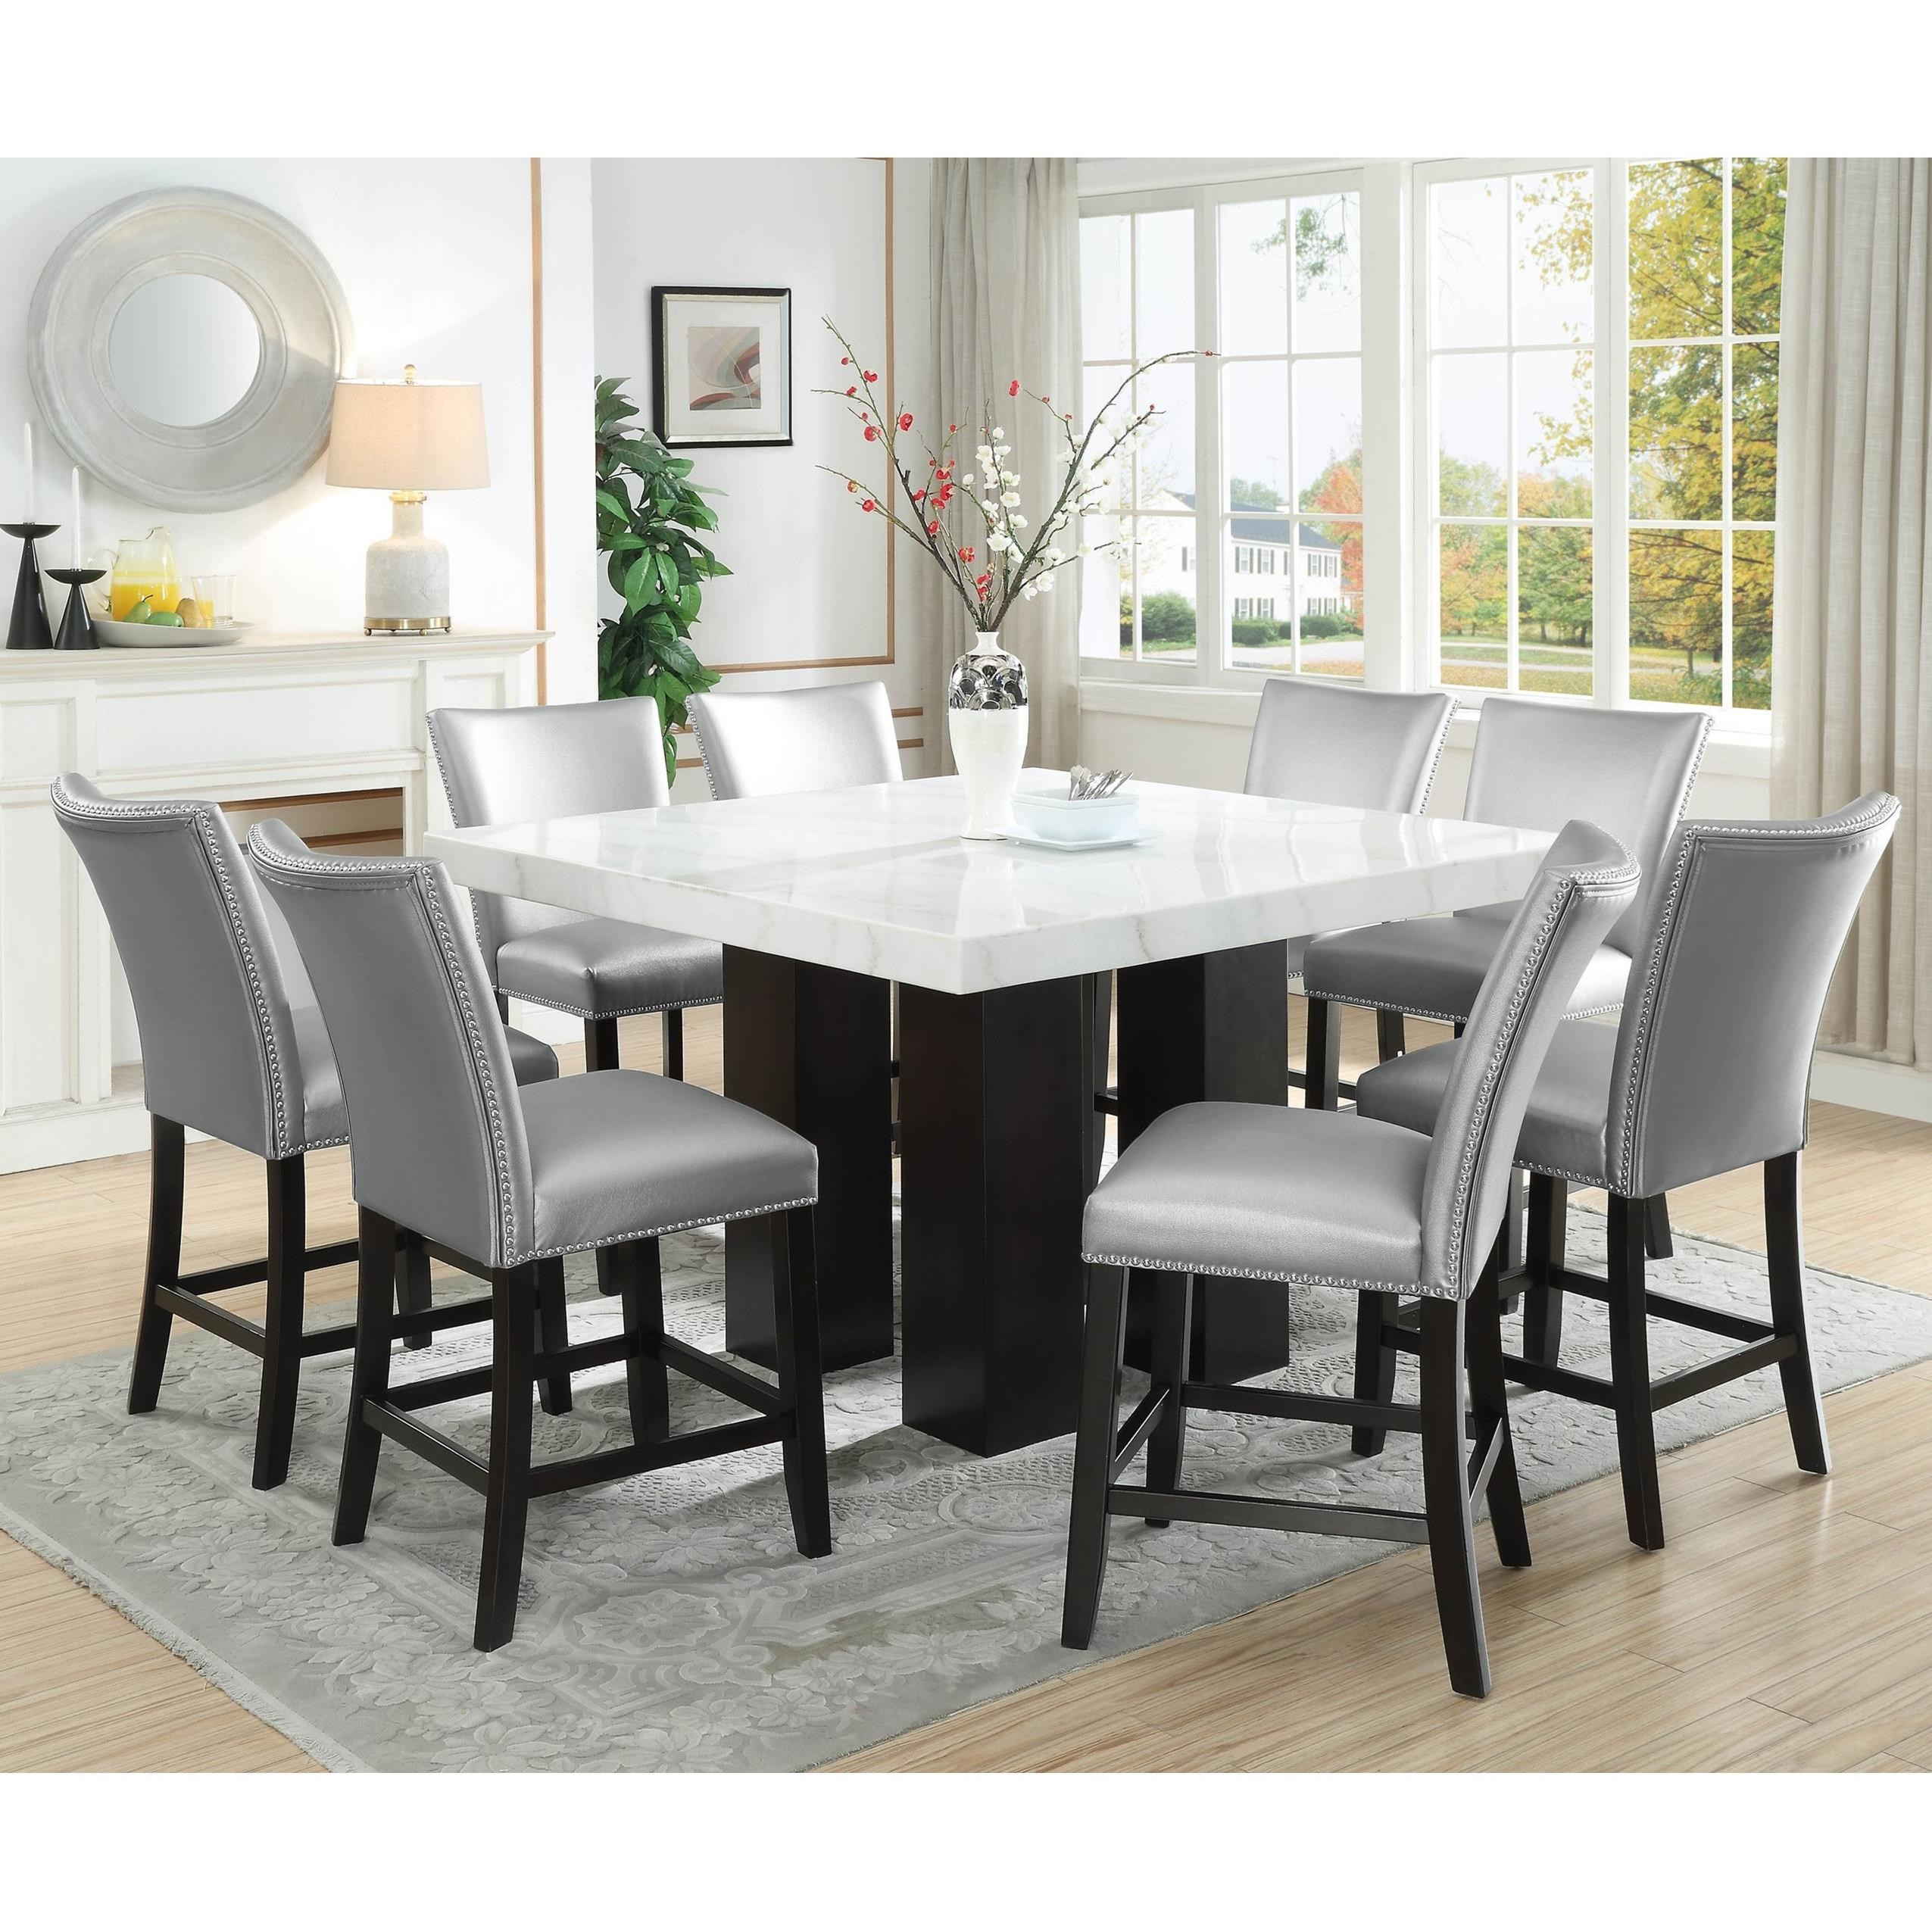 Camila 9 Piece Counter Height Dining Set by Steve Silver at Northeast Factory Direct